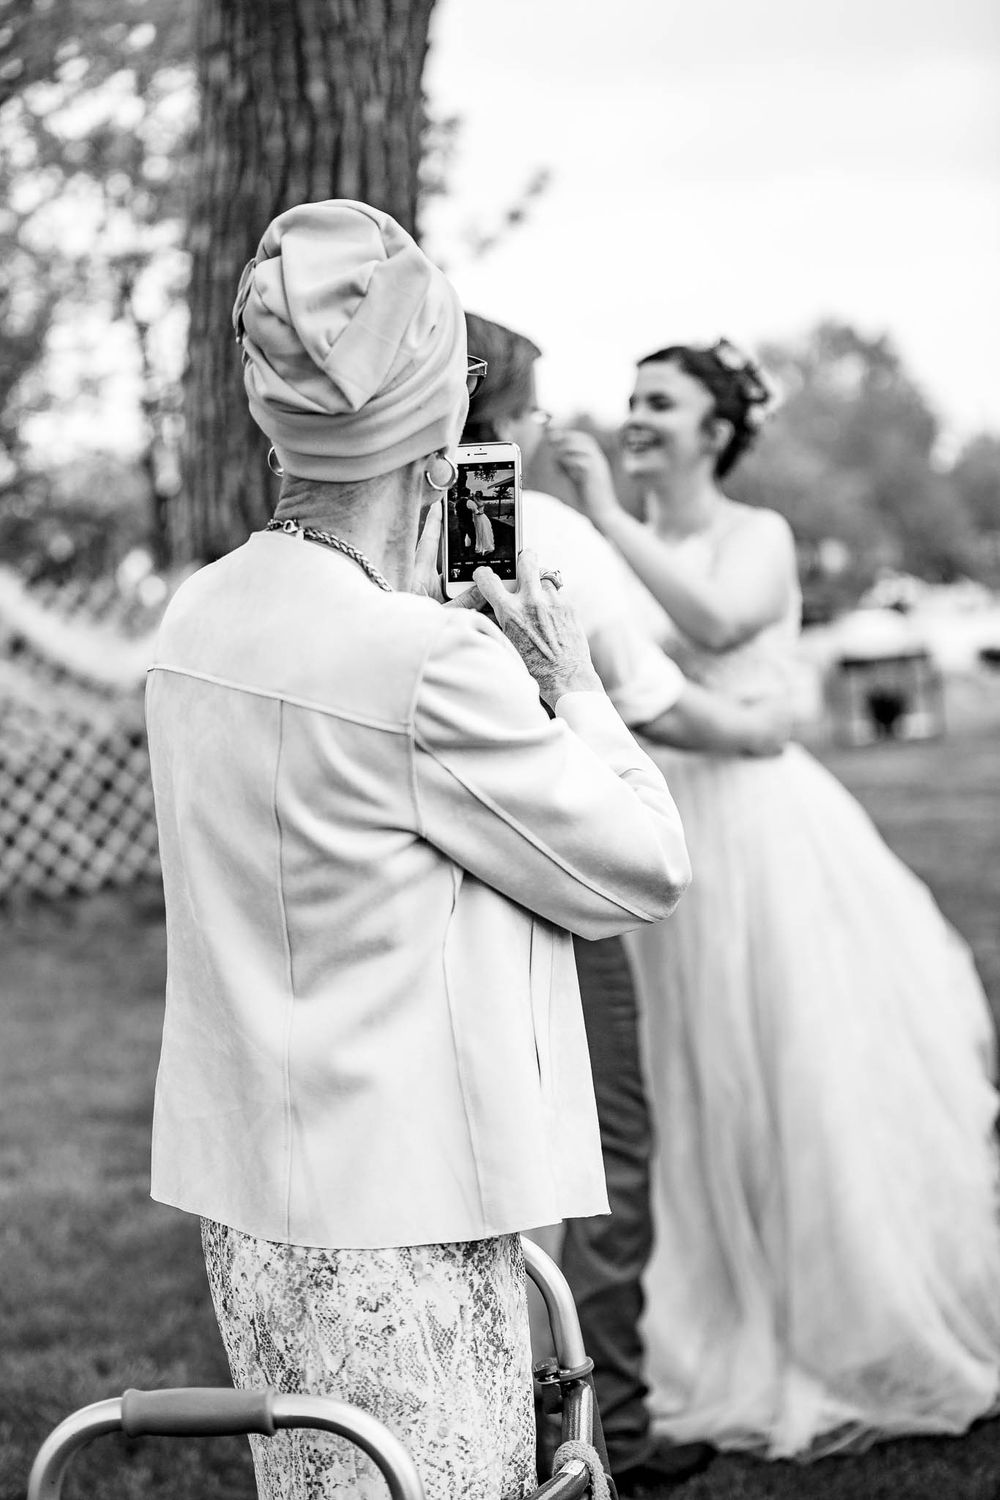 Wedding documentary photography of grandma taking a photo with her cell phone